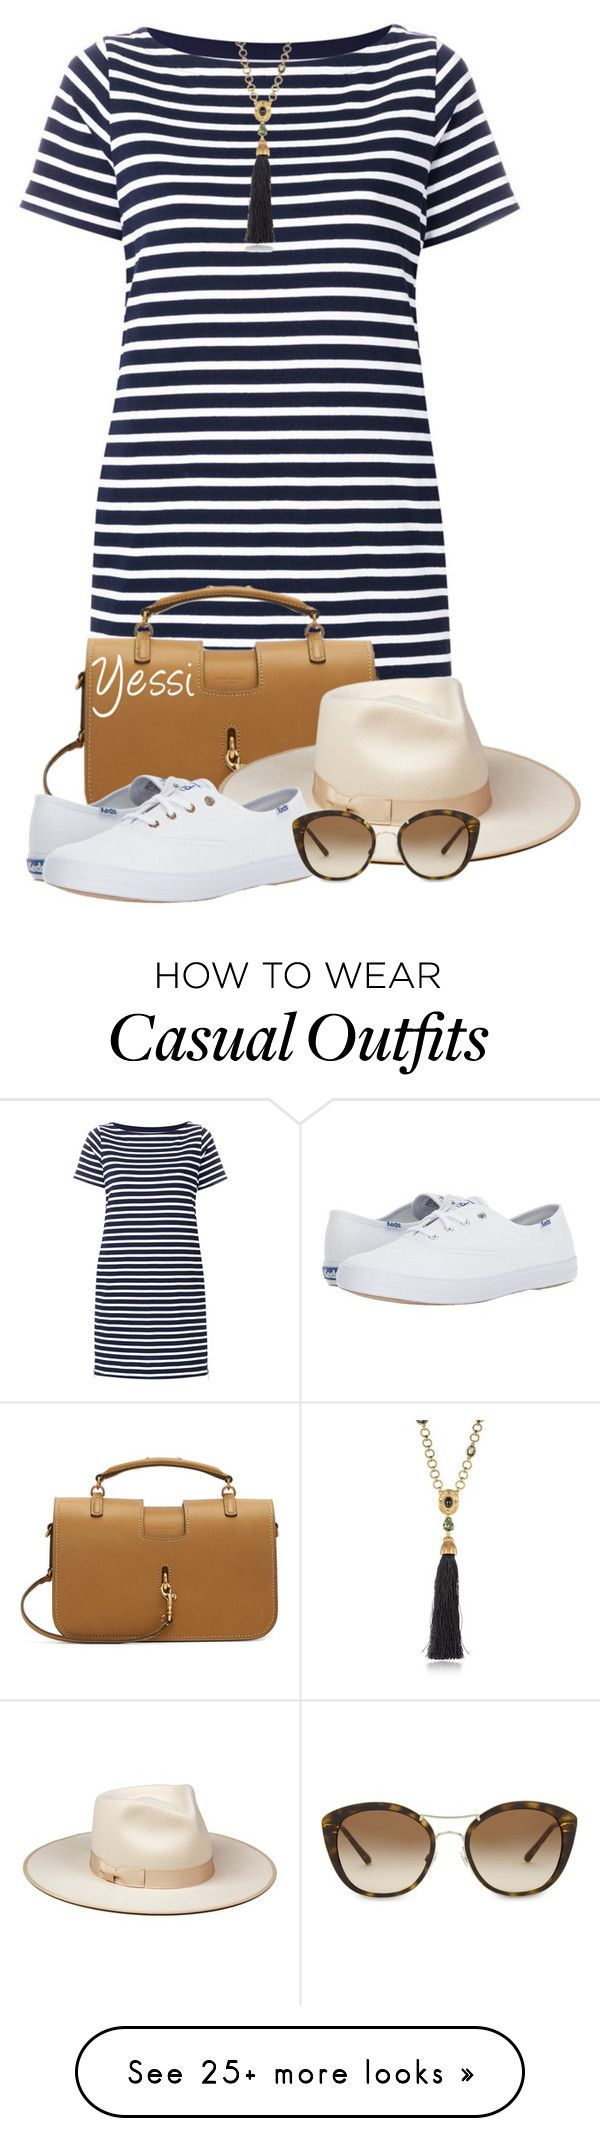 """""""~  Dresses & Sneakers  ~"""" by pretty-fashion-designs on Polyvore featuring Sacai, Yves Saint Laurent, Keds, Oscar de la Renta and Burberry"""